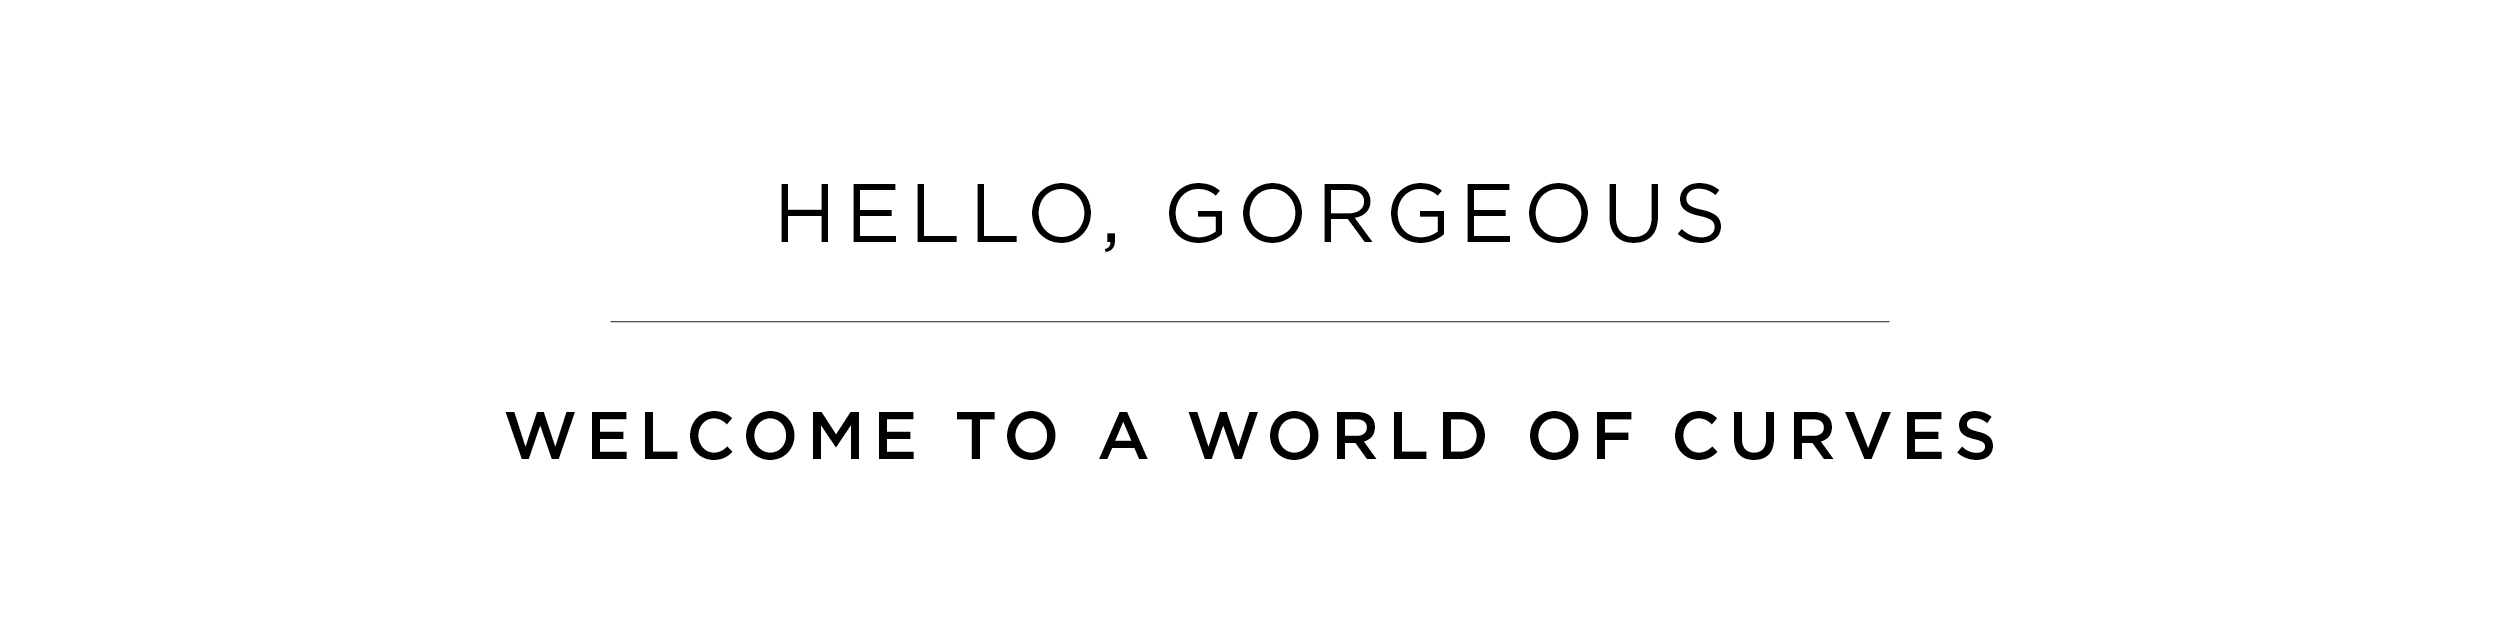 HELLO, GORGEOUS - WELCOME TO A WORLD OF CURVES